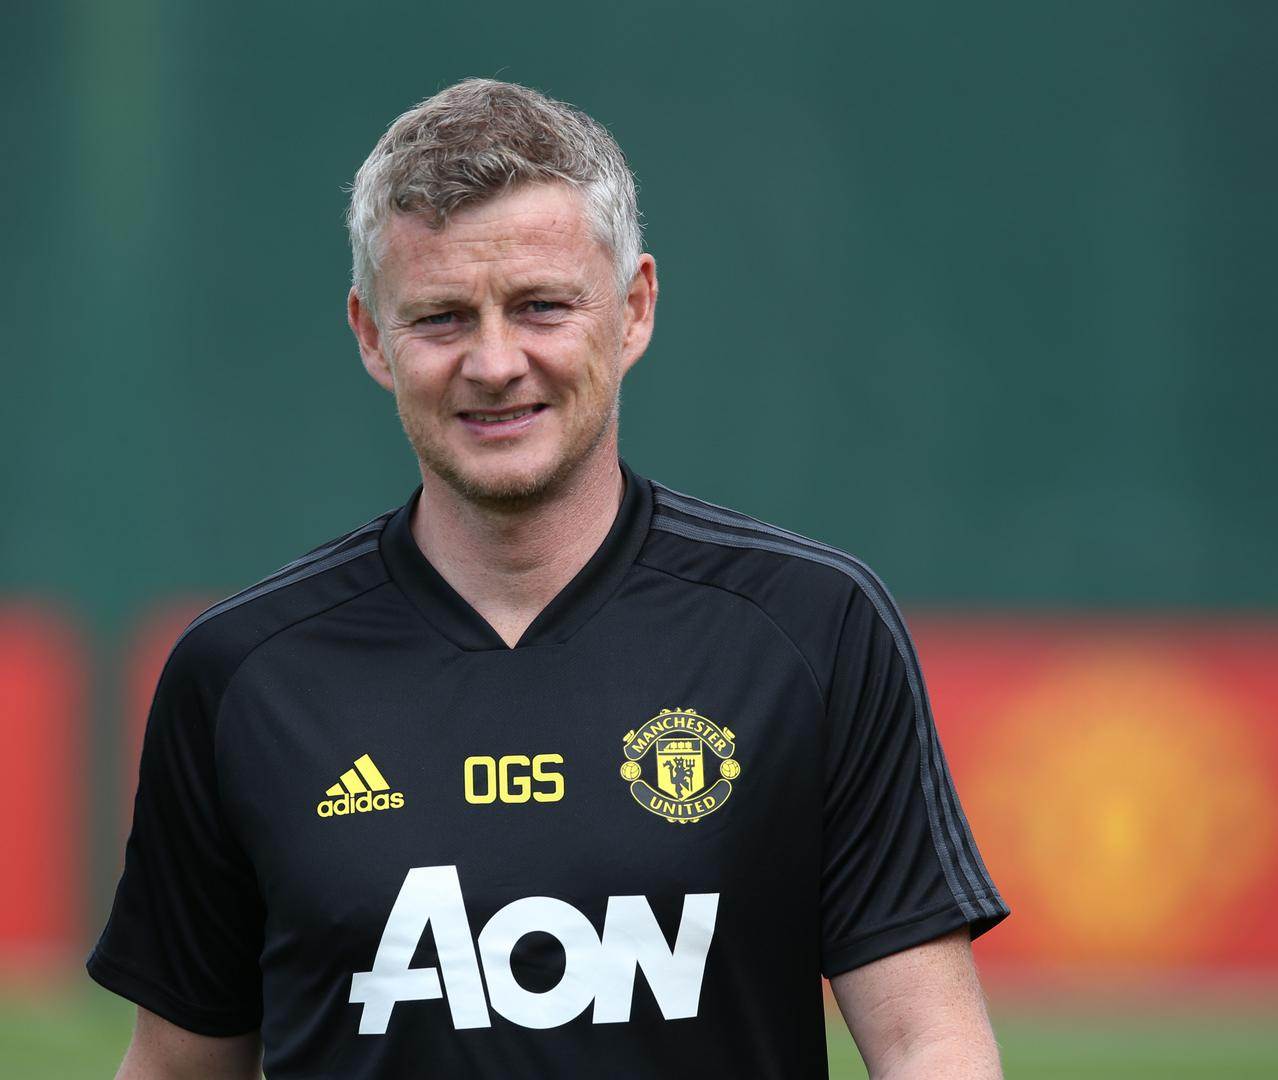 Ole Gunnar Solskjaer in a training session,